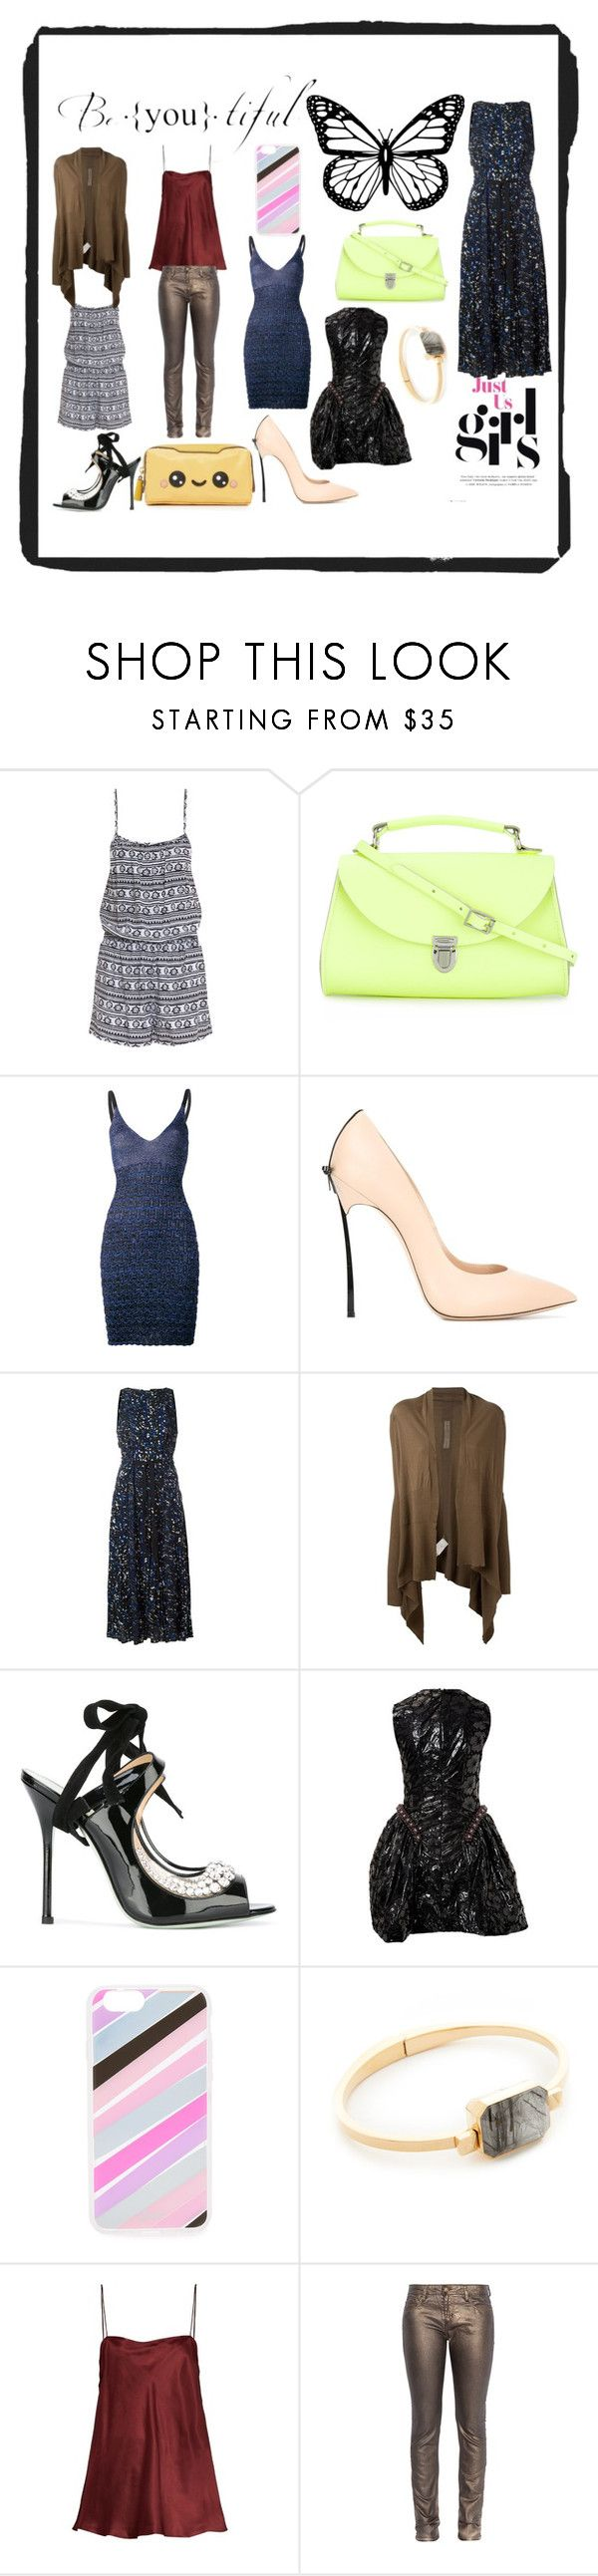 """""""endless tremdz¶"""" by racheal-taylor on Polyvore featuring Cool Change, The Cambridge Satchel Company, Kenzo, Casadei, Proenza Schouler, Rick Owens, Giannico, Simone Rocha, Ringly and E L L E R Y"""